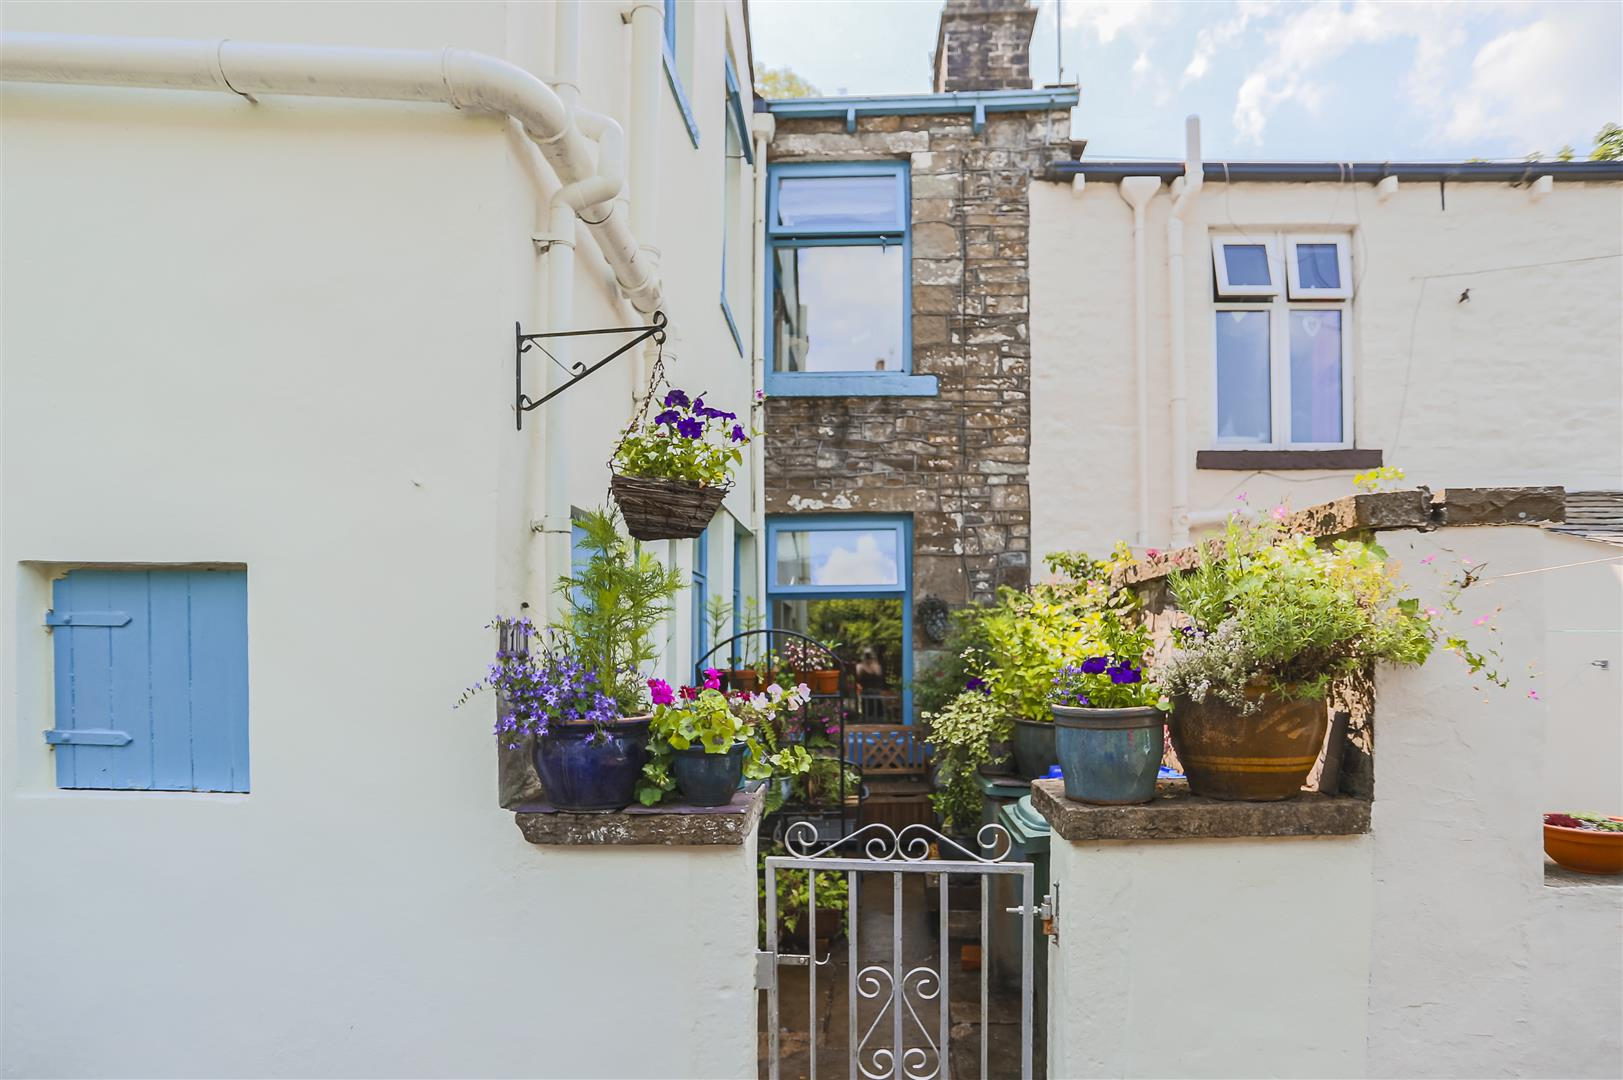 3 Bedroom Terraced House For Sale - Image 19